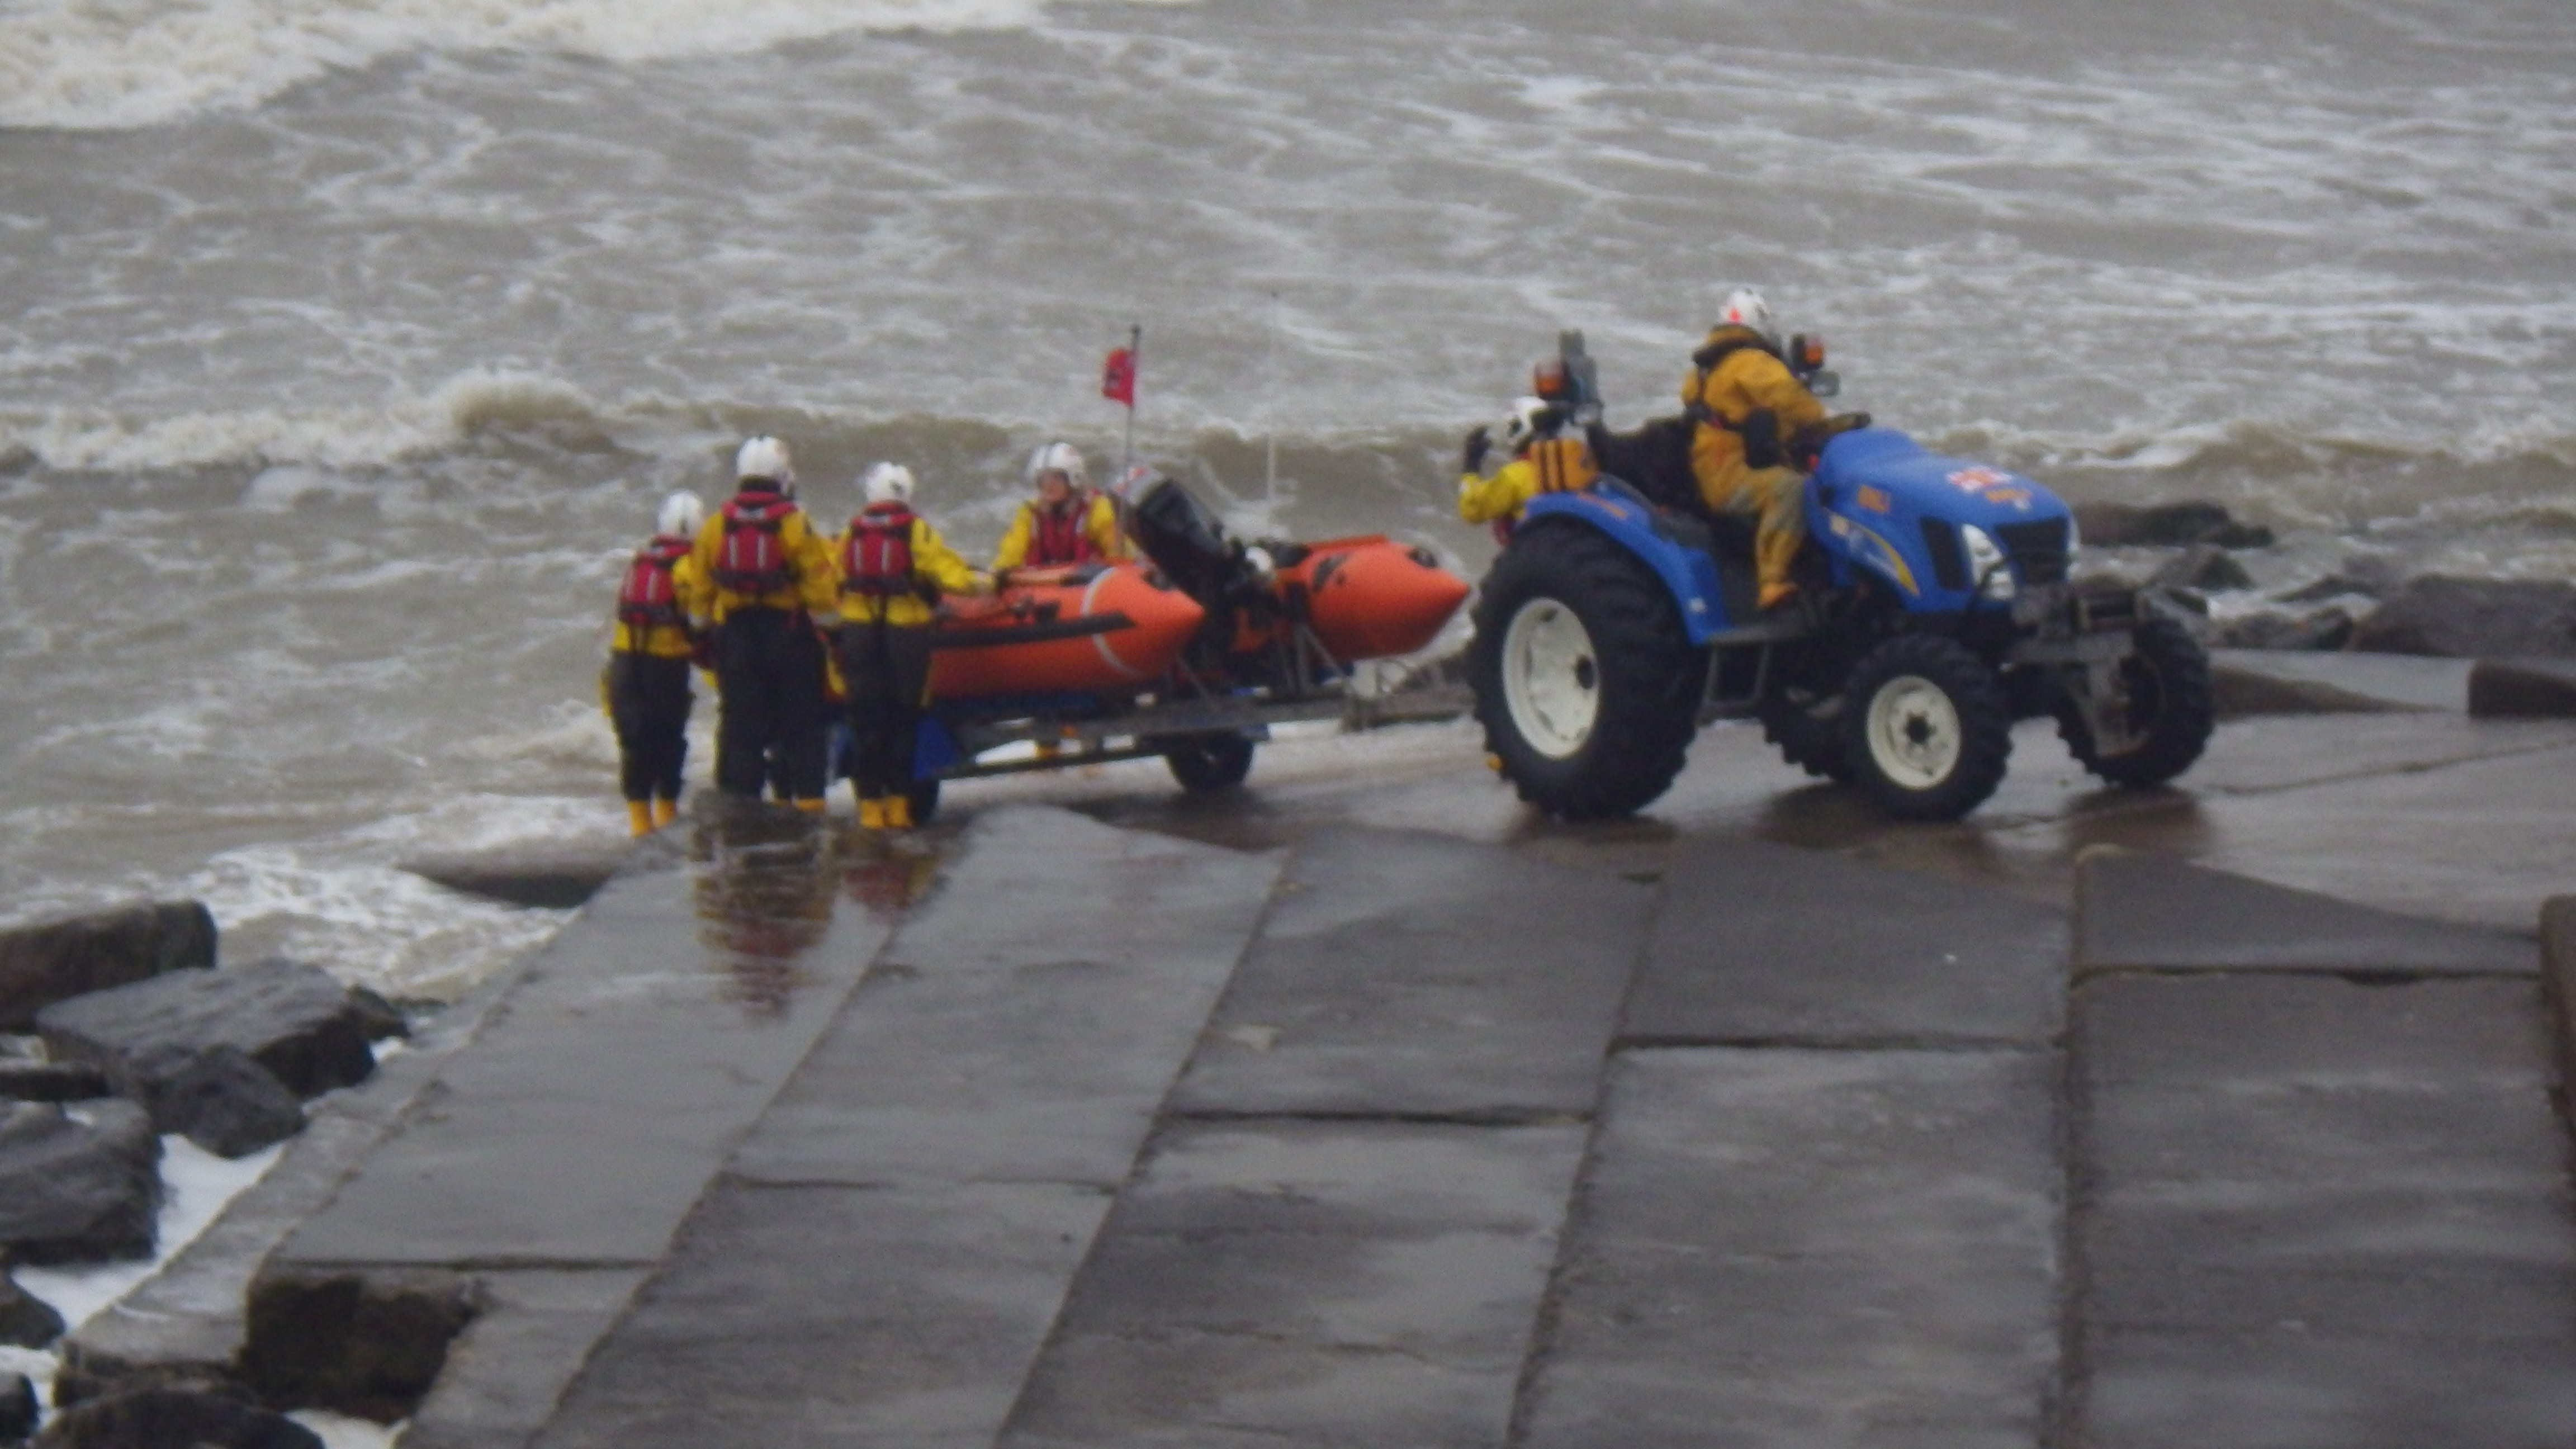 A wind swept sea breaking over the slipway during the launching